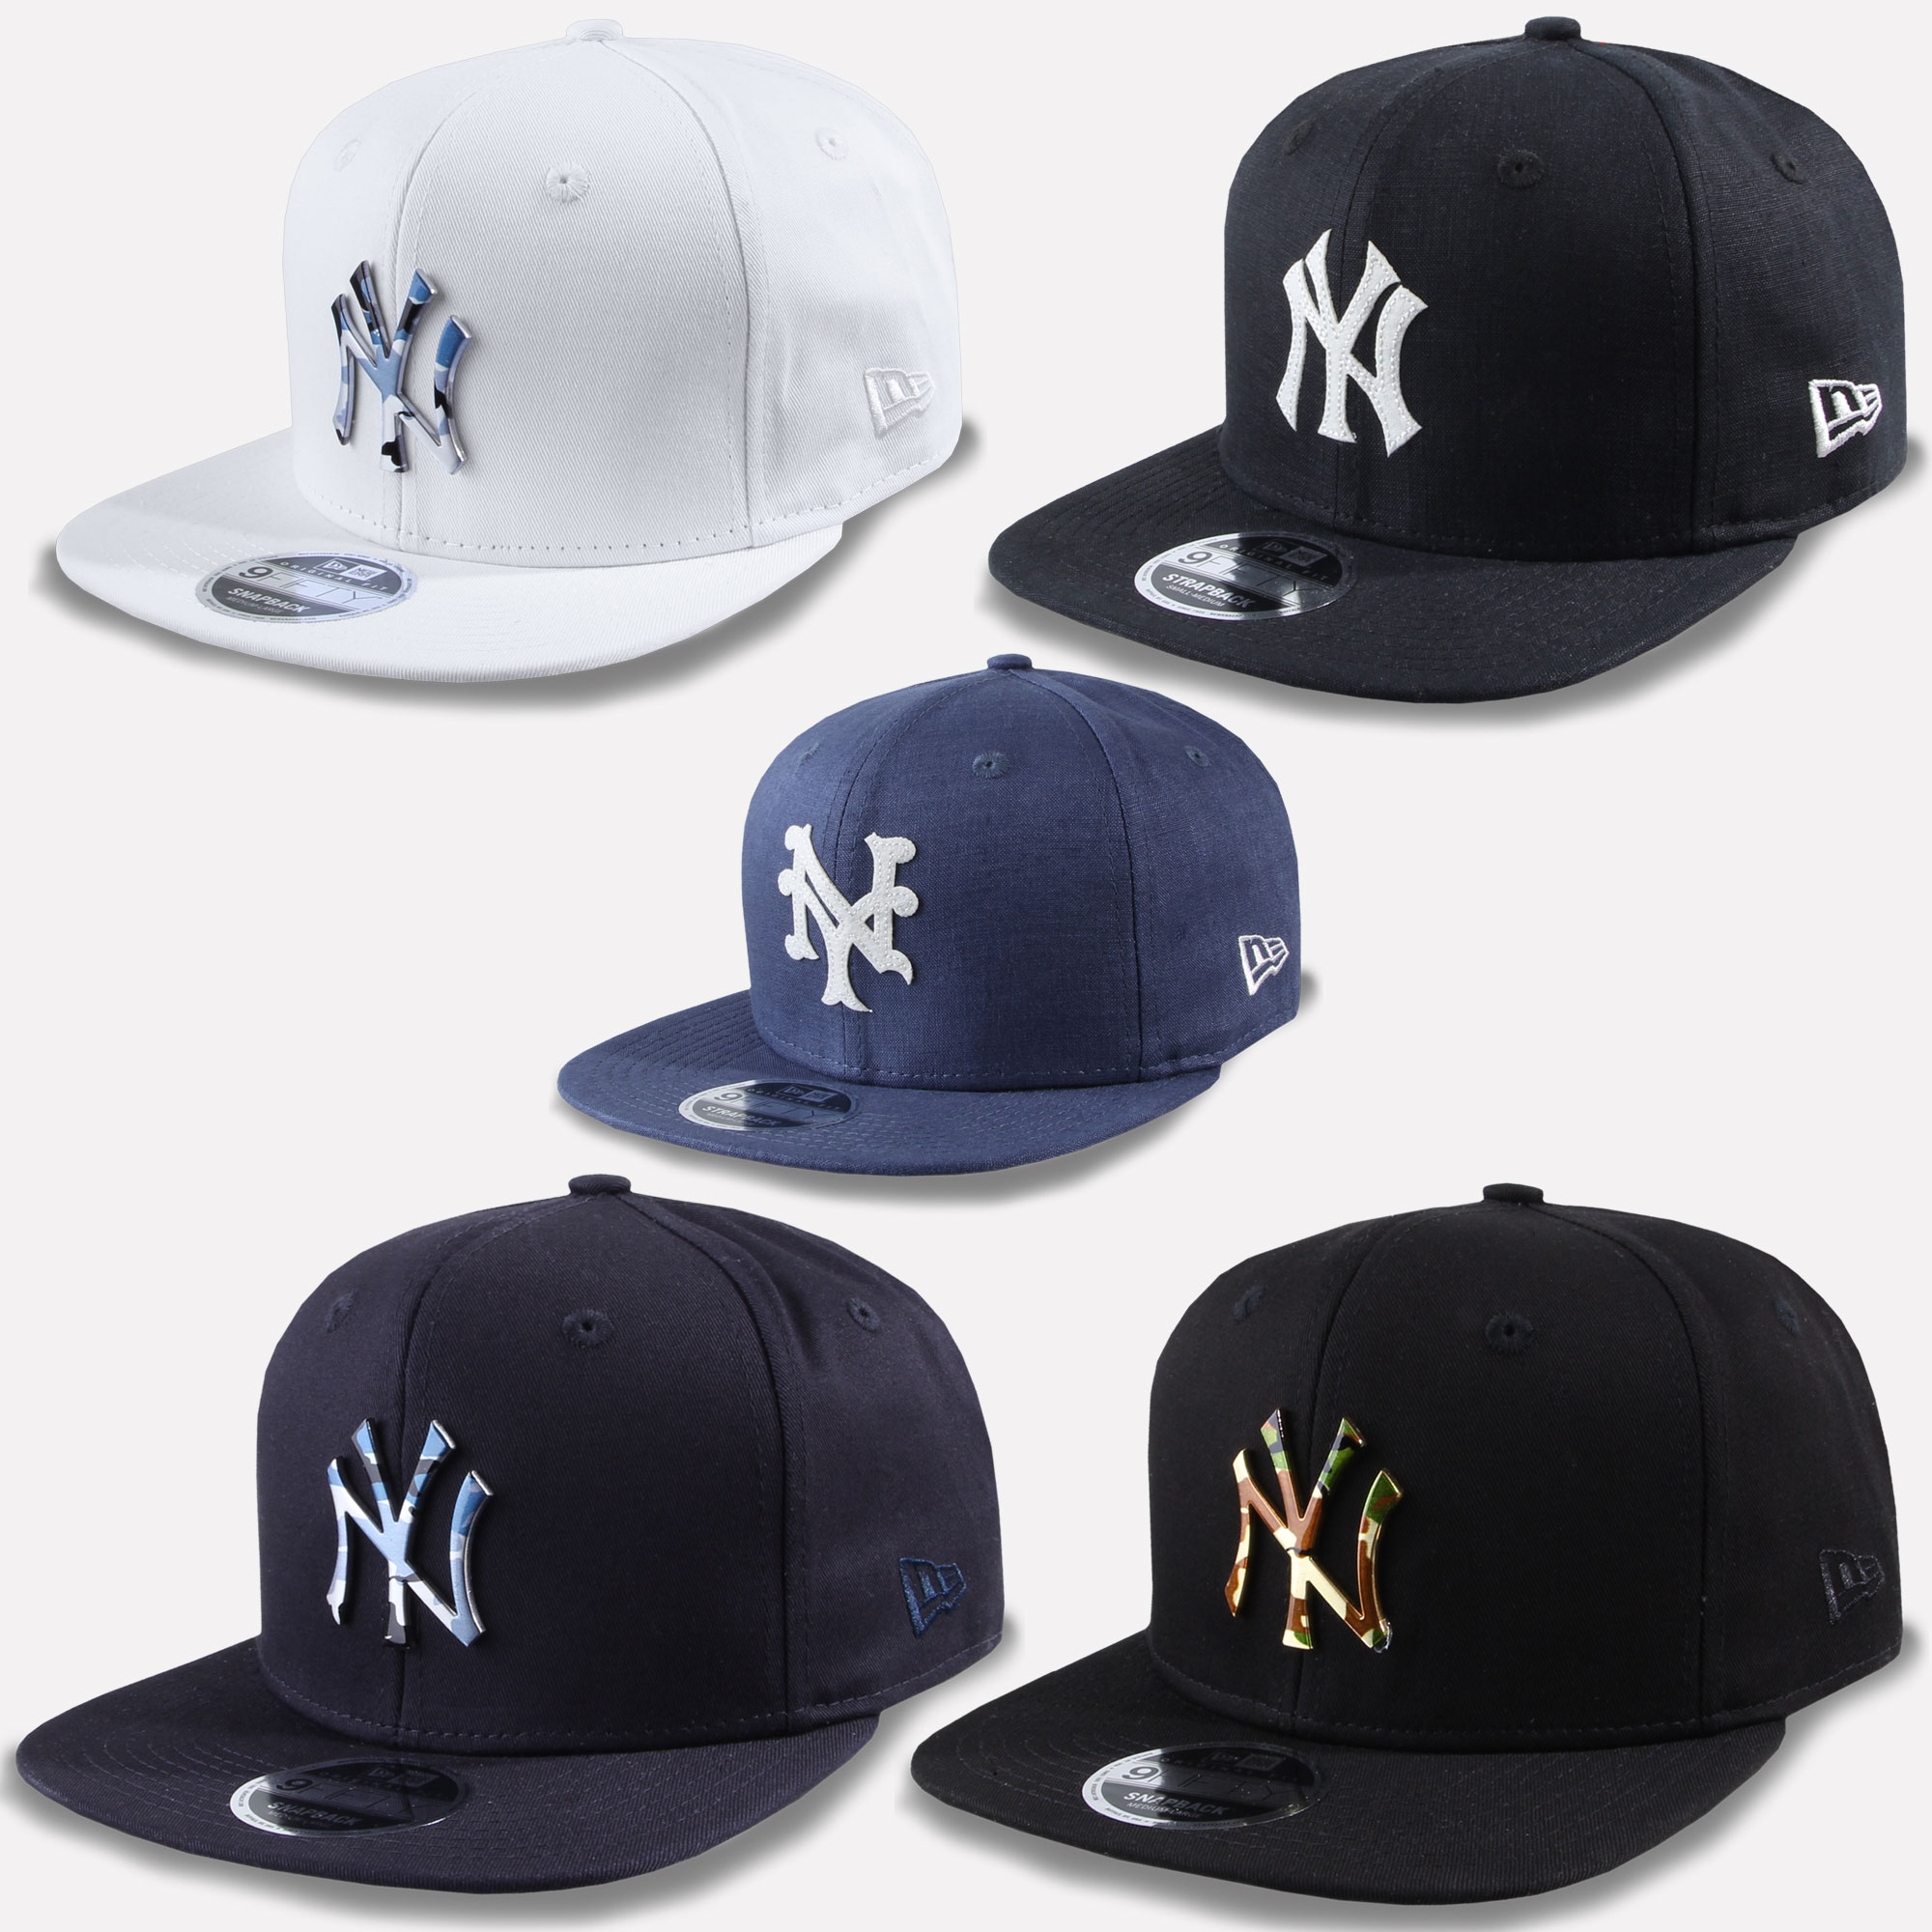 1e25a8ff4f67f New Era 9fifty GORRA SNAPBACK MLB Team York Yankees Camuflaje metal ...